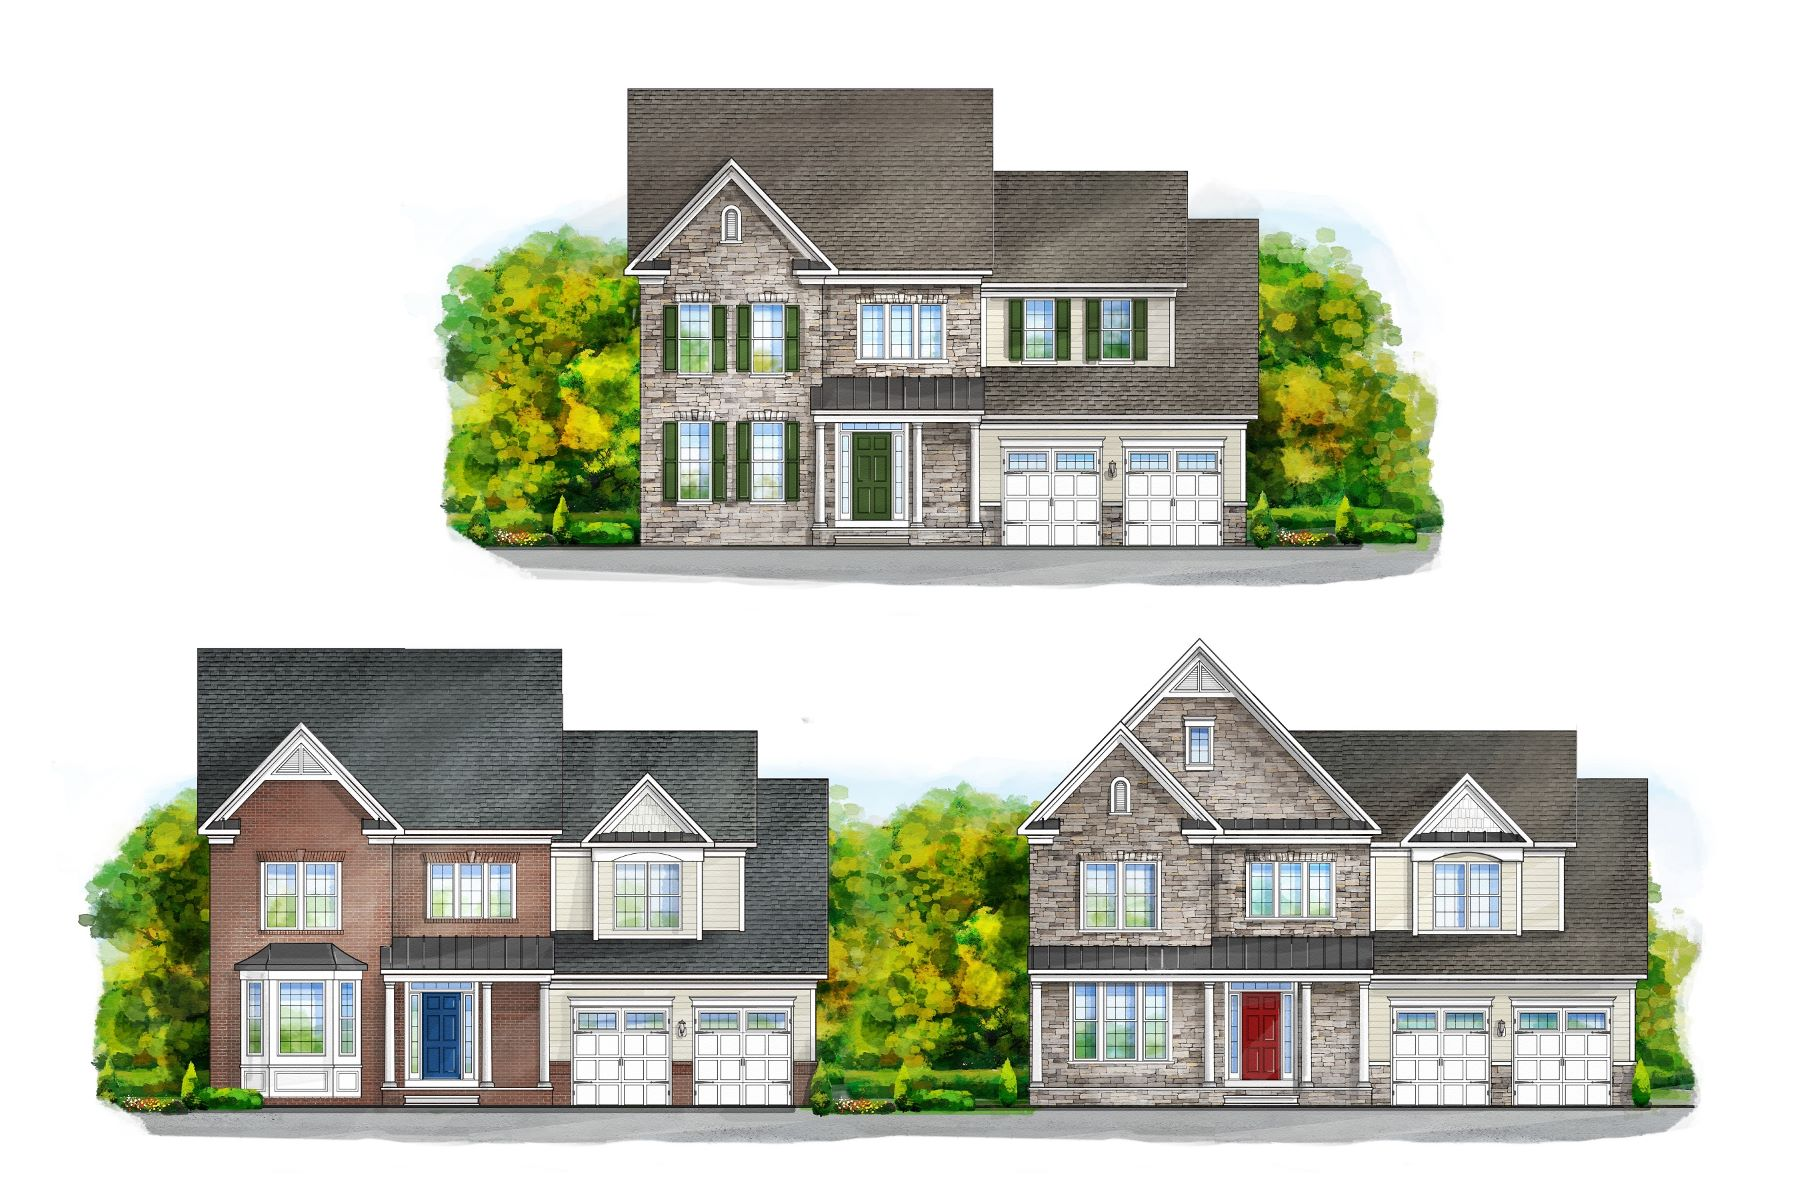 single family homes for Active at Chapel Knoll Estates 10801 White Trillium Road Perry Hall, Maryland 21128 United States